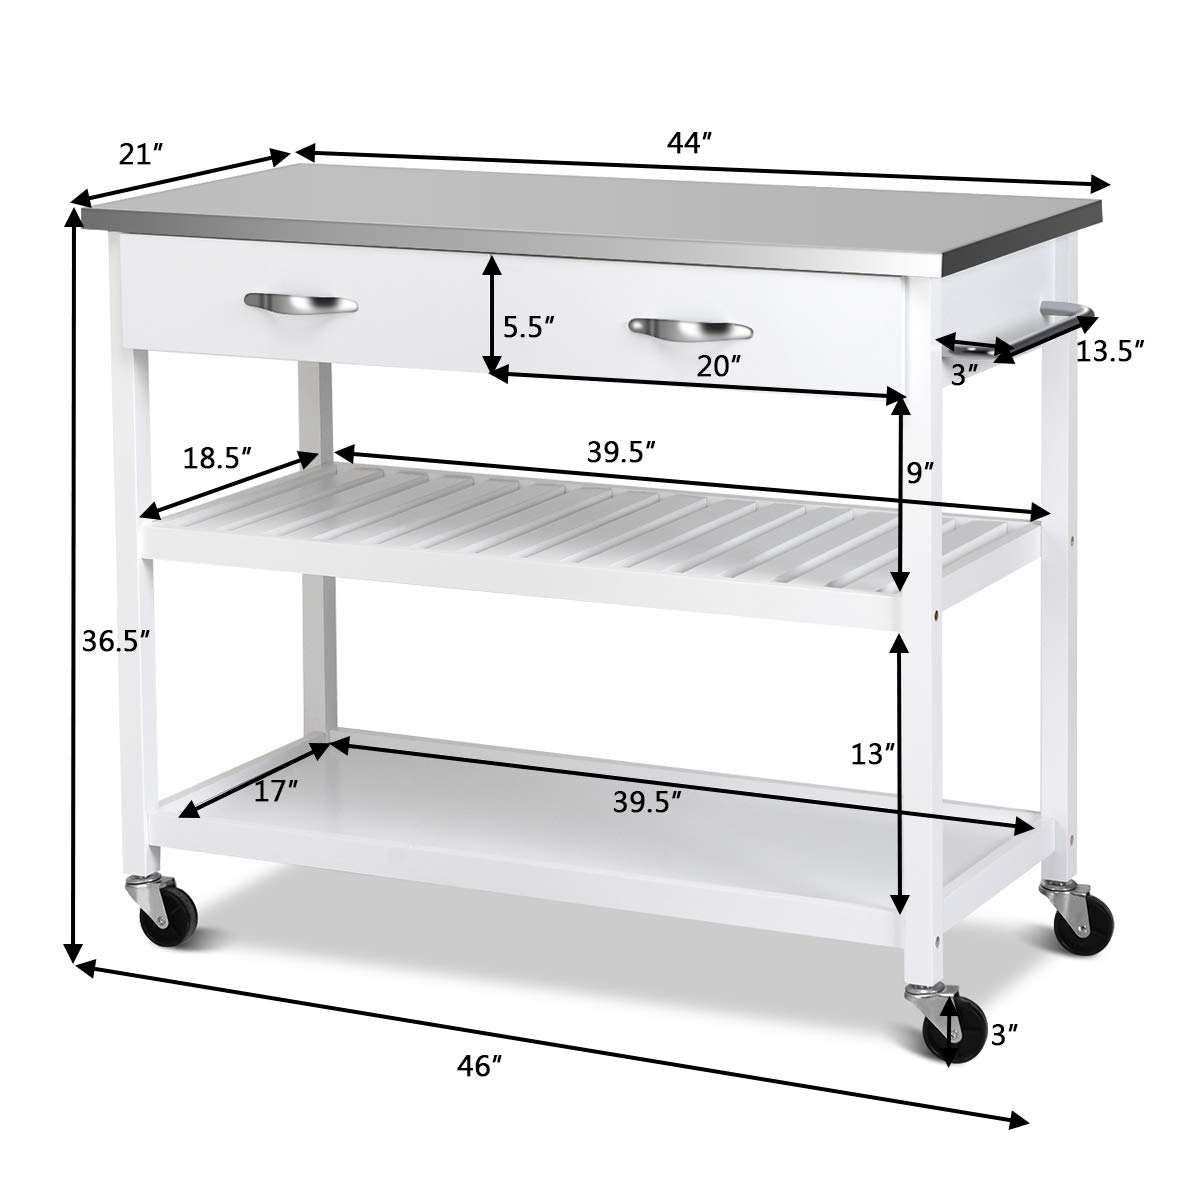 Giantex Kitchen Trolley Cart Rolling Island Cart Serving Cart Large Storage with Stainless Steel Countertop, Lockable Wheels, 2 Drawers and Shelf Utility Cart for Home and Restaurant, (White) by Giantex (Image #8)